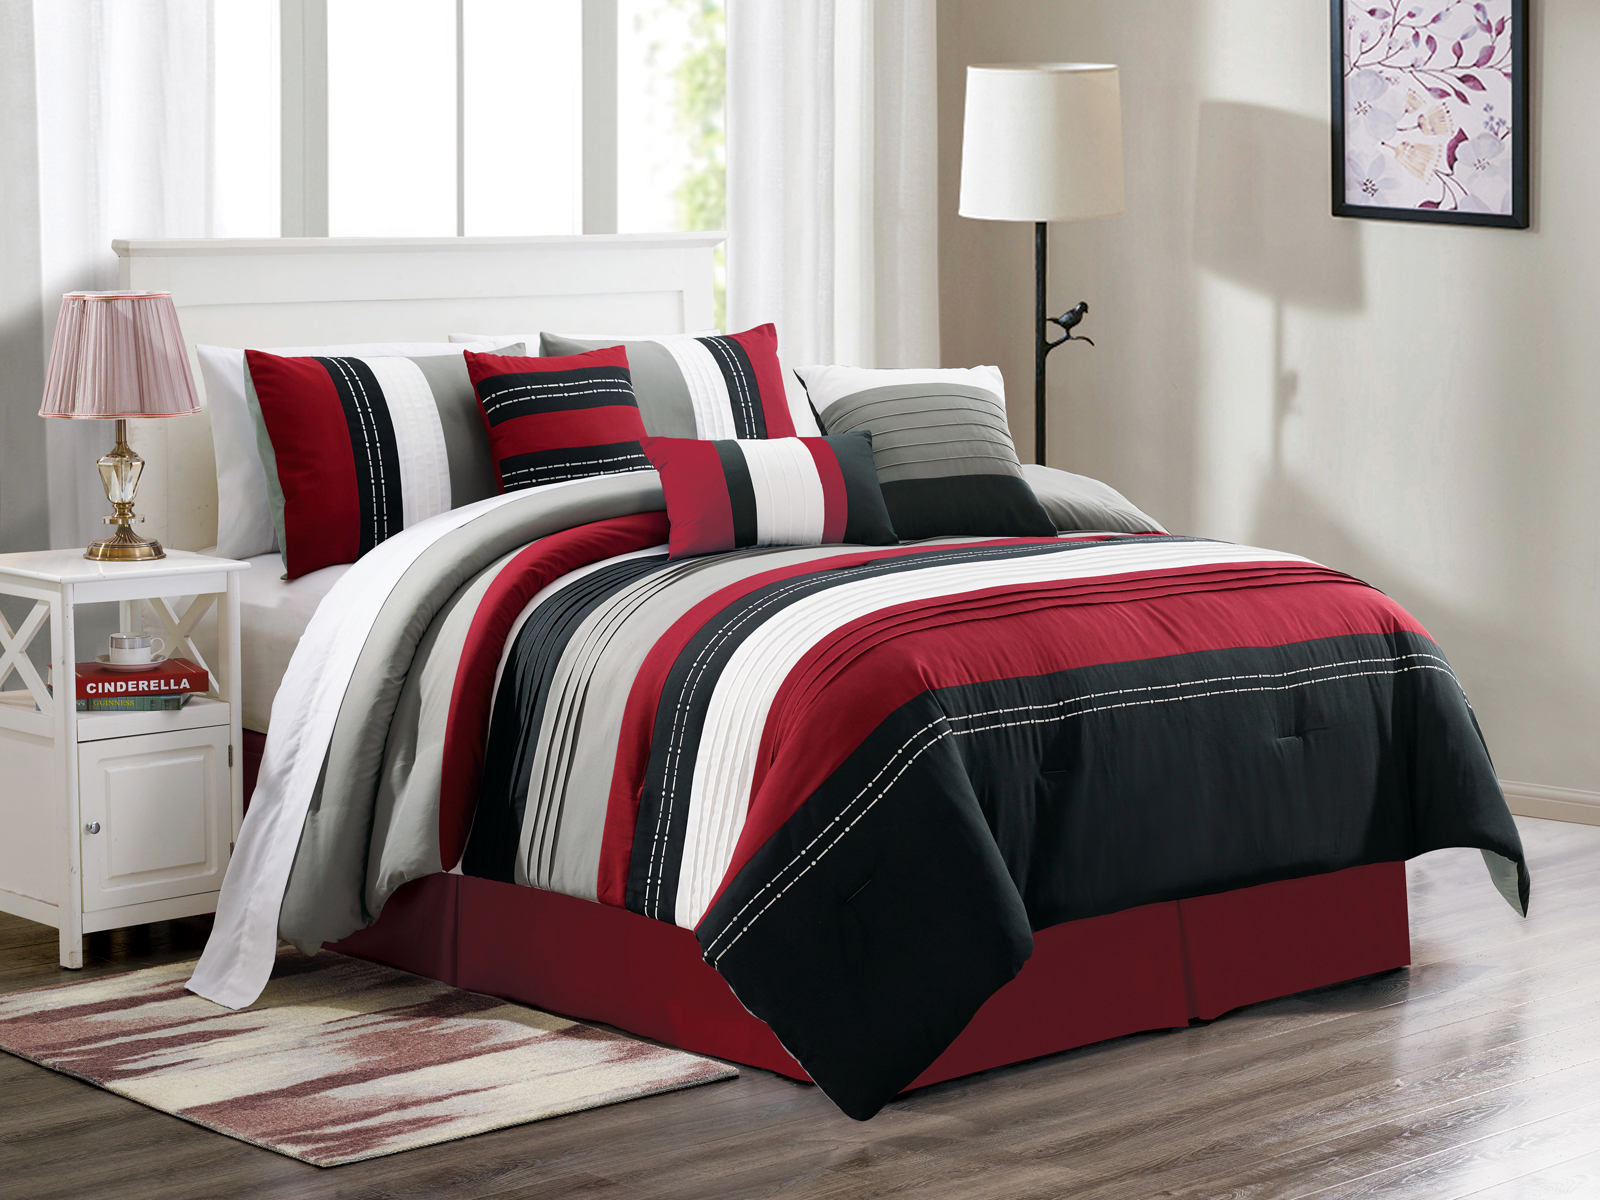 details about 7 jordan embroidery pleated stripe comforter set burgundy black white gray queen